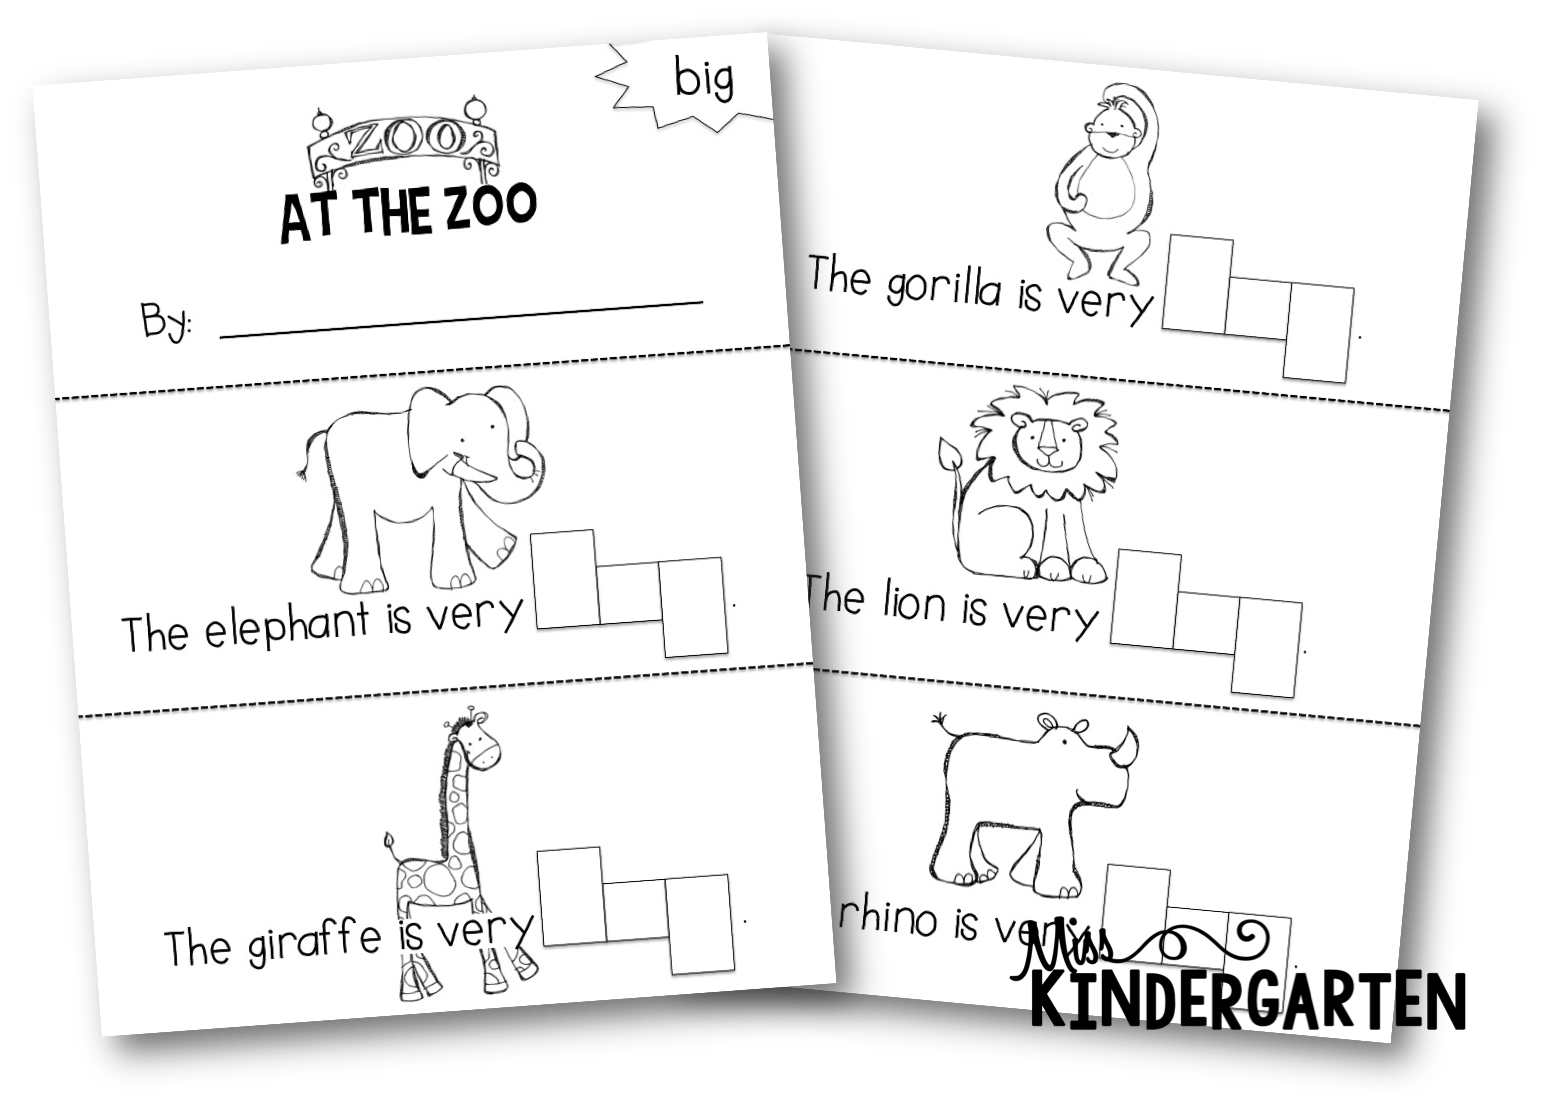 Worksheet Sight Word Booklets Kindergarten stamping sight word miss kindergarten each booklet follows a predictable pattern as the primary focus of these books is practice theres only slight varianc